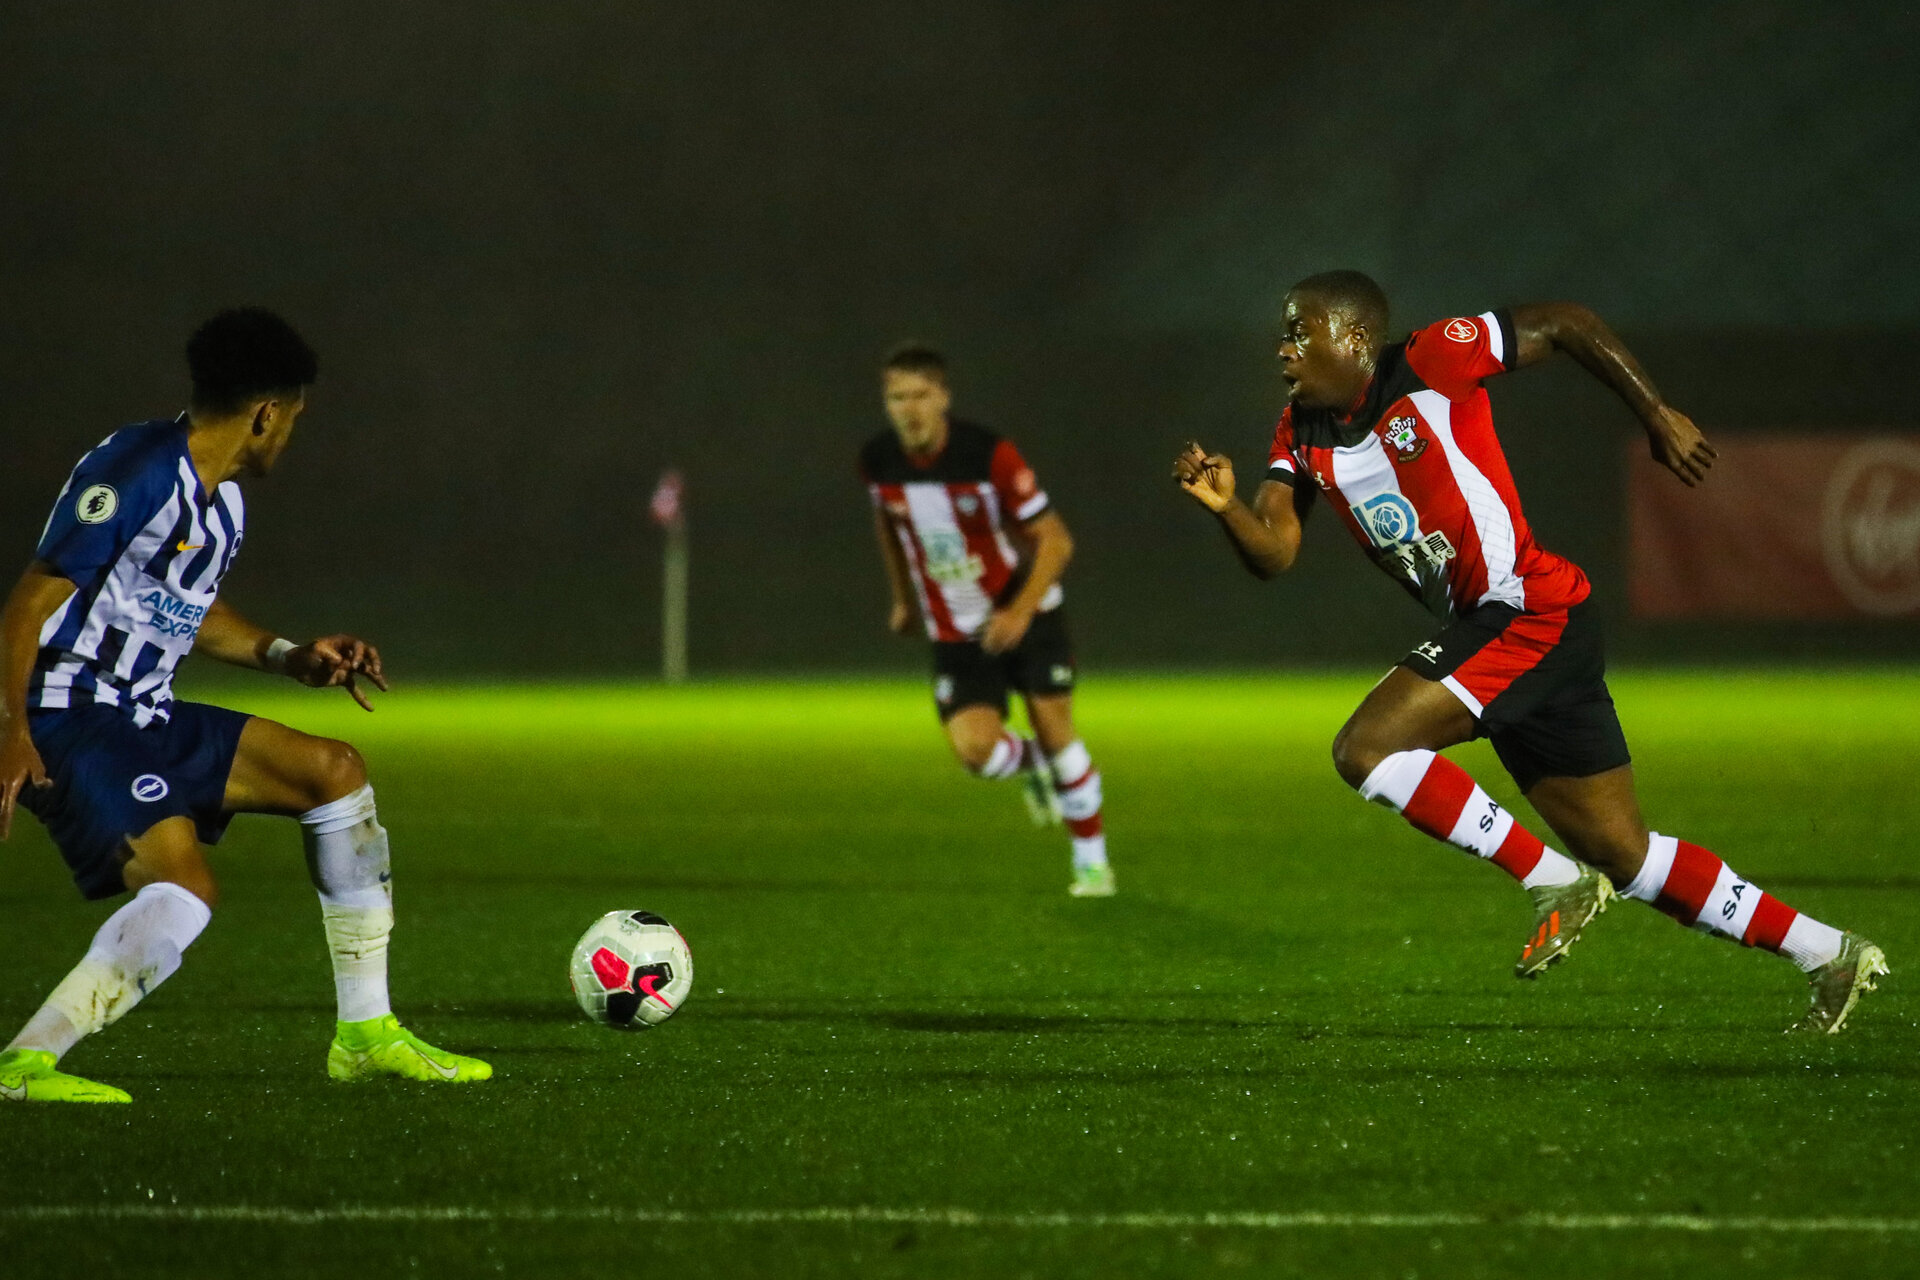 SOUTHAMPTON, ENGLAND - NOVEMBER 01: Michael Obafemi of Southampton FC in possession during the Premier League 2 match between Southampton FC and Brighton & Hove Albion at the Staplewood Campus on November 01, 2019 in Southampton, England